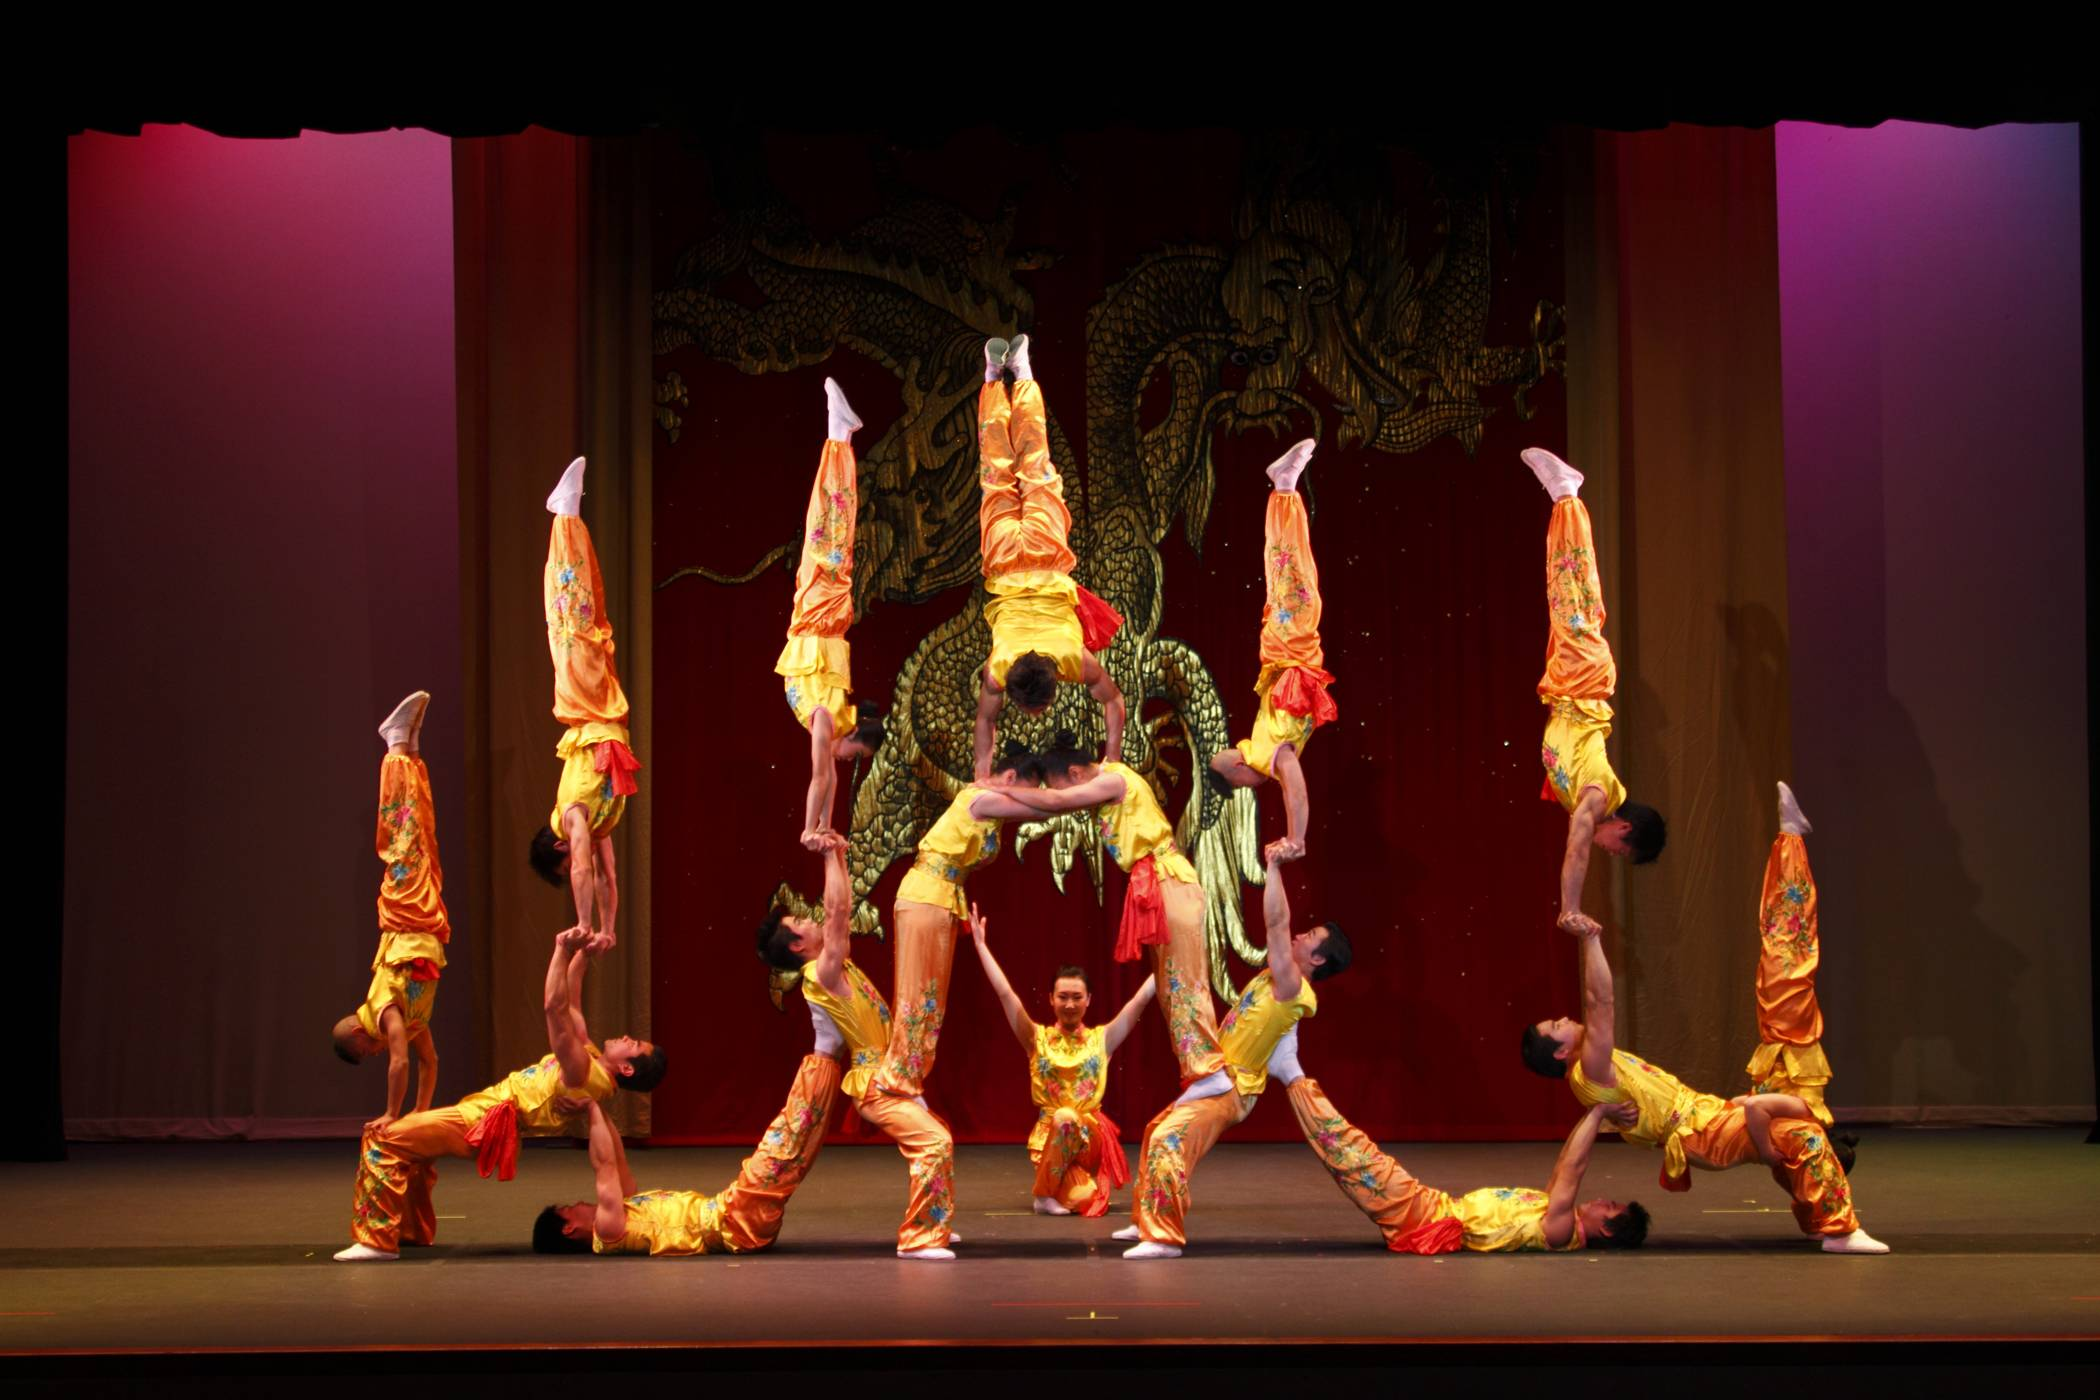 The Peking Acrobats perform at College of Lake County's Lumber Center for the Performing Arts in Grayslake on Friday, Feb. 19.